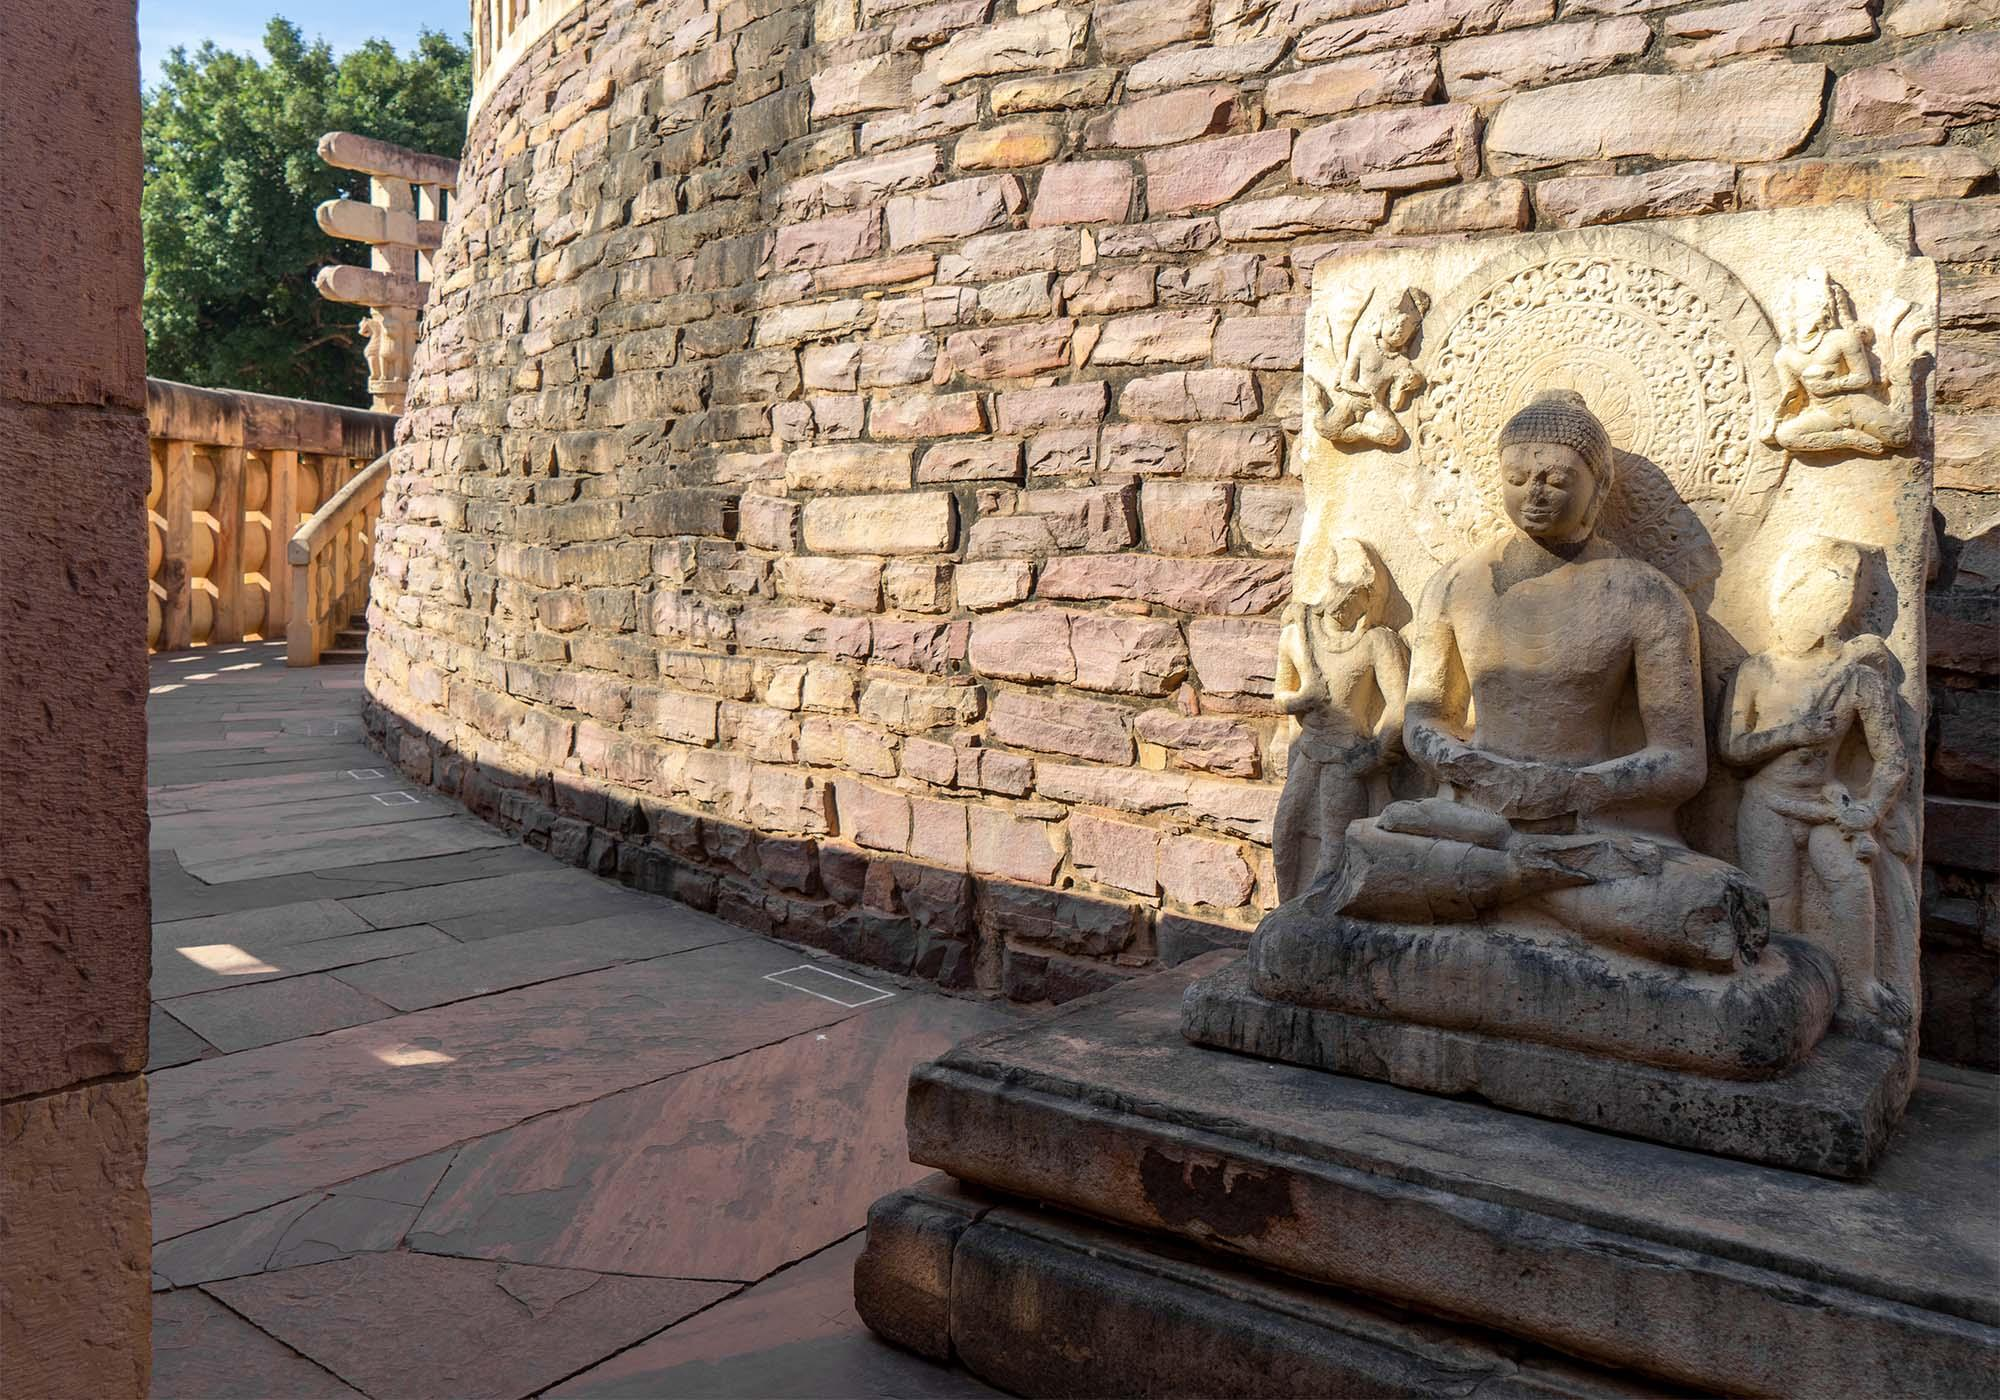 The sculpture of Buddha in dhyana-mudra at the eastern side of the stupa, added to the site in the 5th century AD by the Guptas. – © Michael Turtle